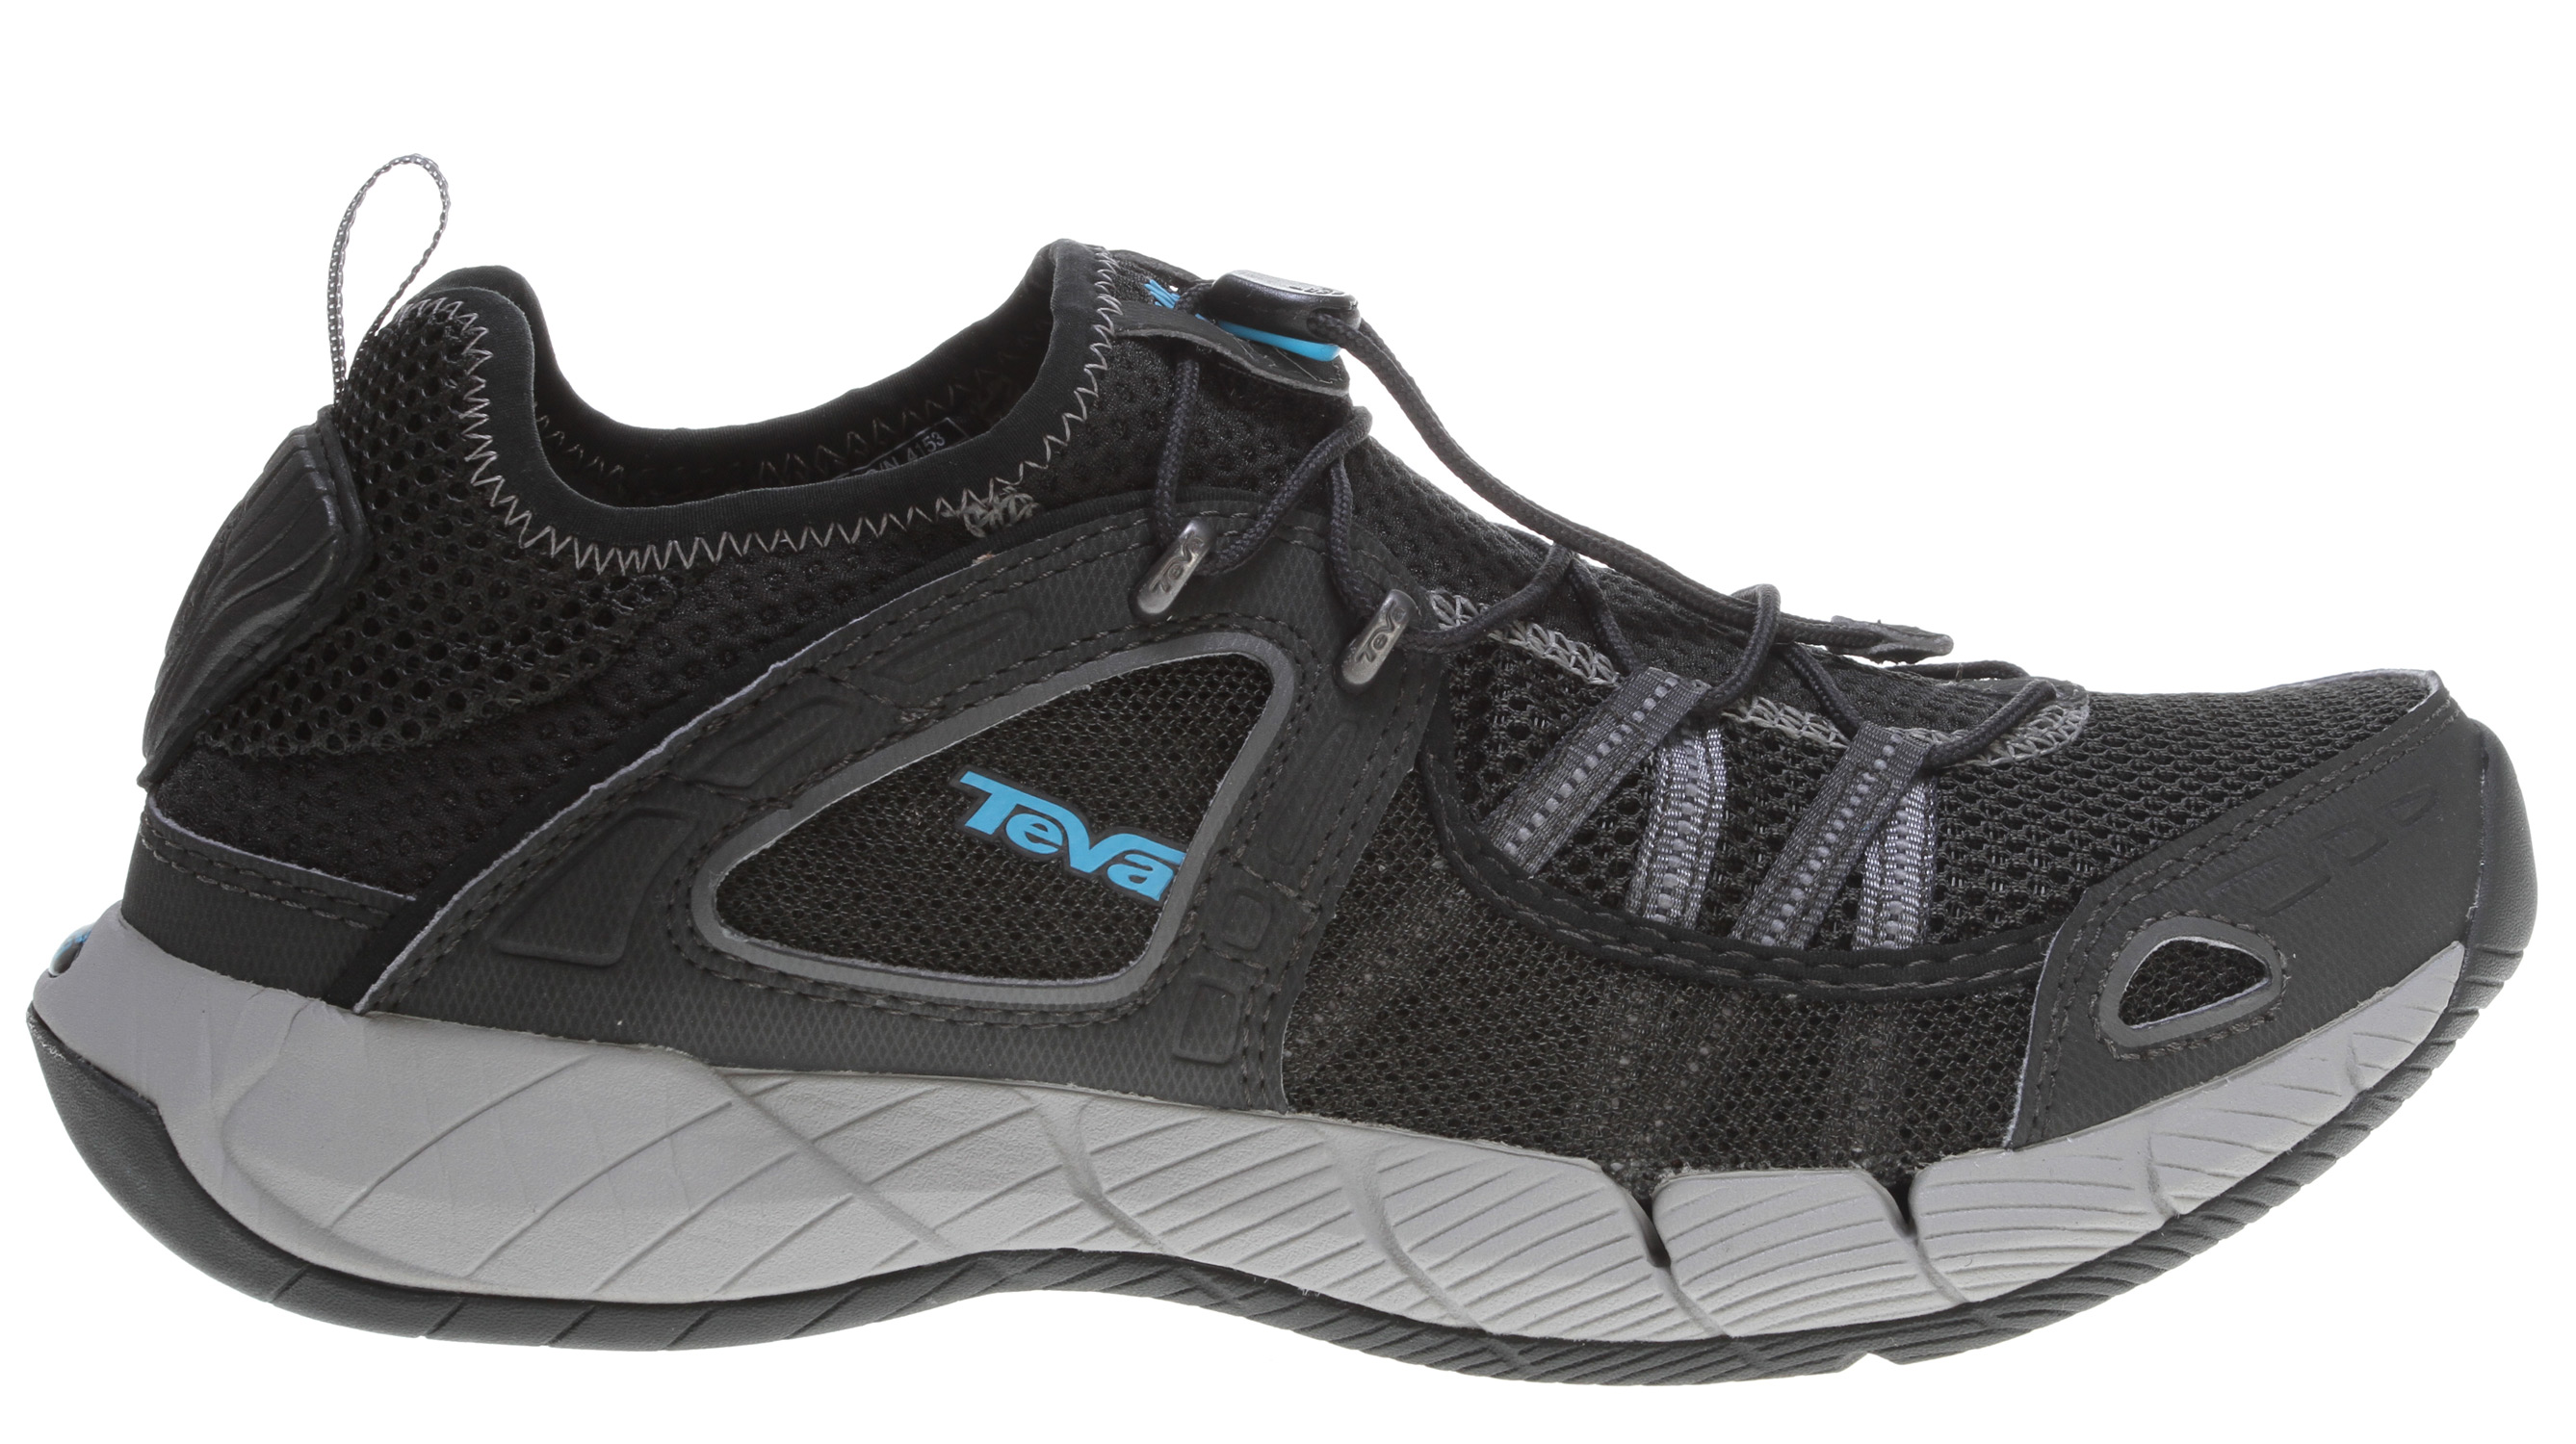 Camp and Hike The Churn is a multi-sport shoe that specializes in getting wet. Its mesh upper is extremely breathable and quick-drying, making it the perfect shoe for those hot summer days when all you want to do is plunge into the water. Back in camp, you can take advantage of the Churn's fold down heel Shock Pad when you just feel like slipping into your shoes. If you're only gonna take one pair of shoes on a trip, you won't go wrong with the Churn (unless you're going to a black tie gala...but even then you might be able to pull it off).Key Features of the Teva Churn Water Shoes: T.I.D.E. GRIP Spider Original rubber outsole for uncompromised grip in wet environments Nylon shank for torsional rigidity and stability T.I.D.E. HYDRO Mesh upper drains water and dries quickly Drainage channels in forefoot allow water to escape T.I.D.E. COMFORT High abrasion synthetic leather and mesh upper Fold down heel with Shock Pad for additional cushioning Compression molded EVA midsole Encapsulated Shock Pad in the midsole for shock absorption - $62.95